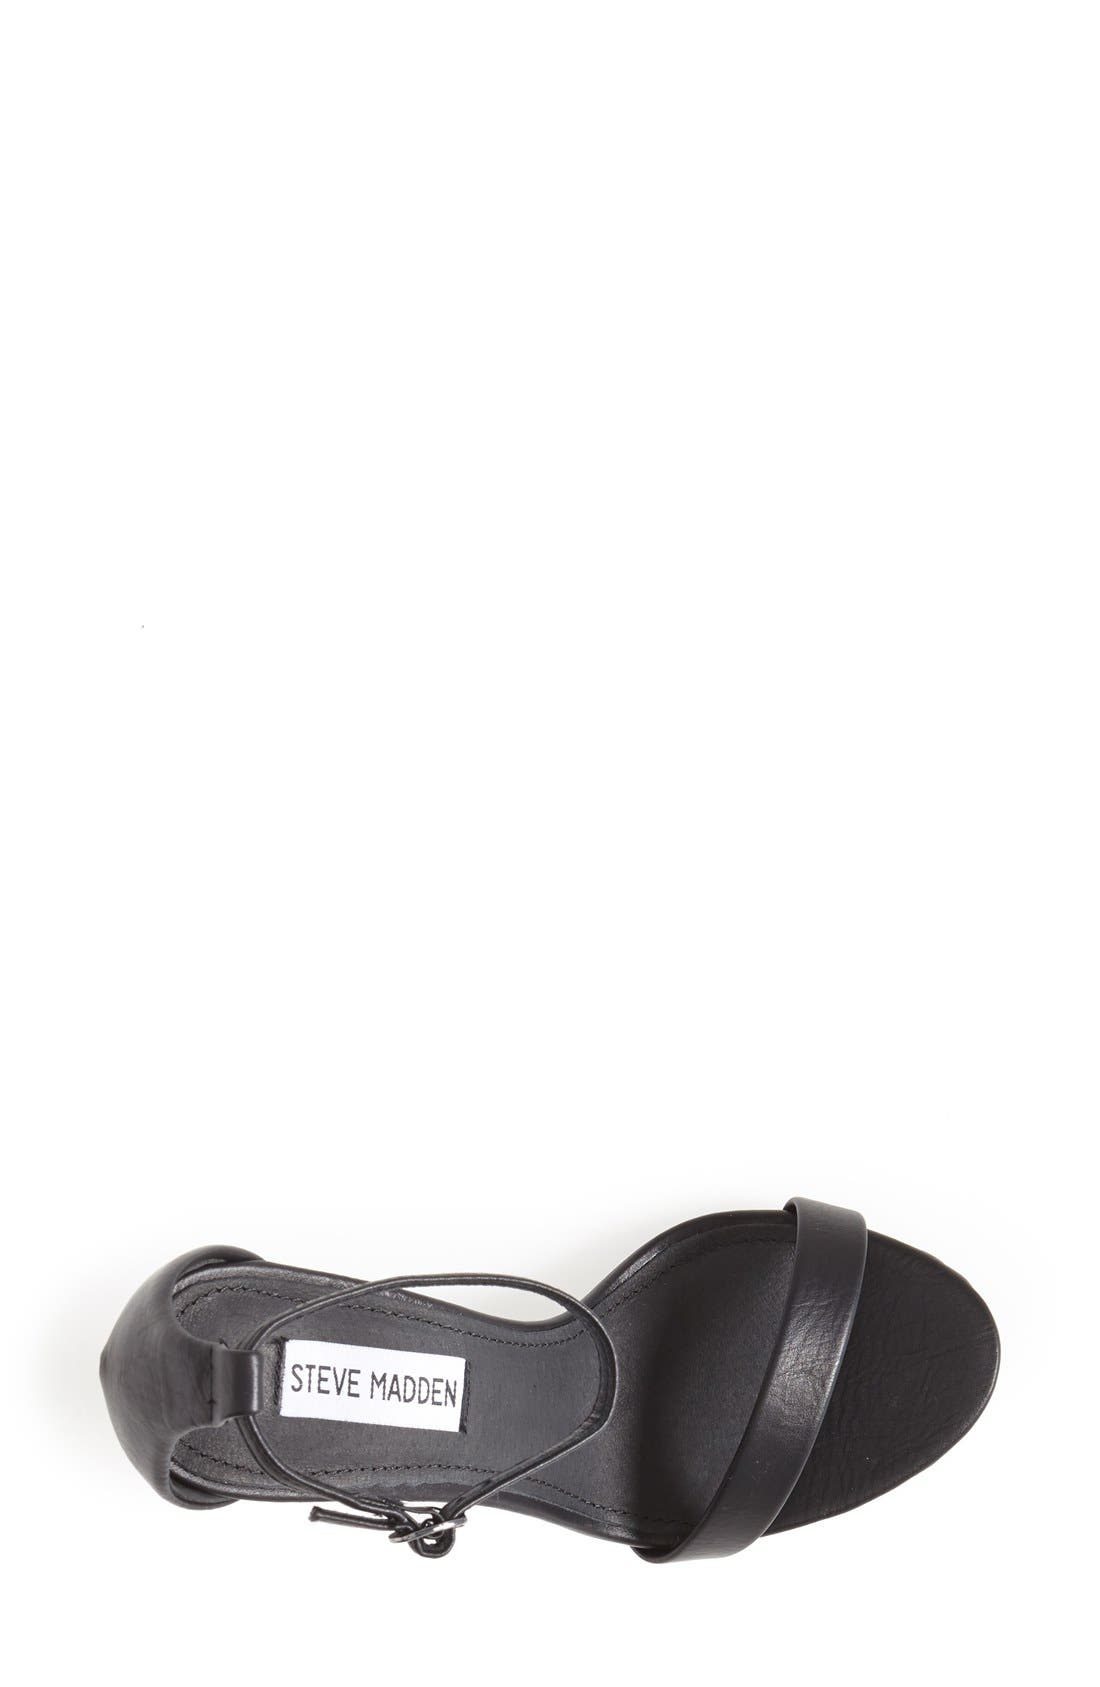 Alternate Image 3  - Steve Madden Stecy Sandal (Women)